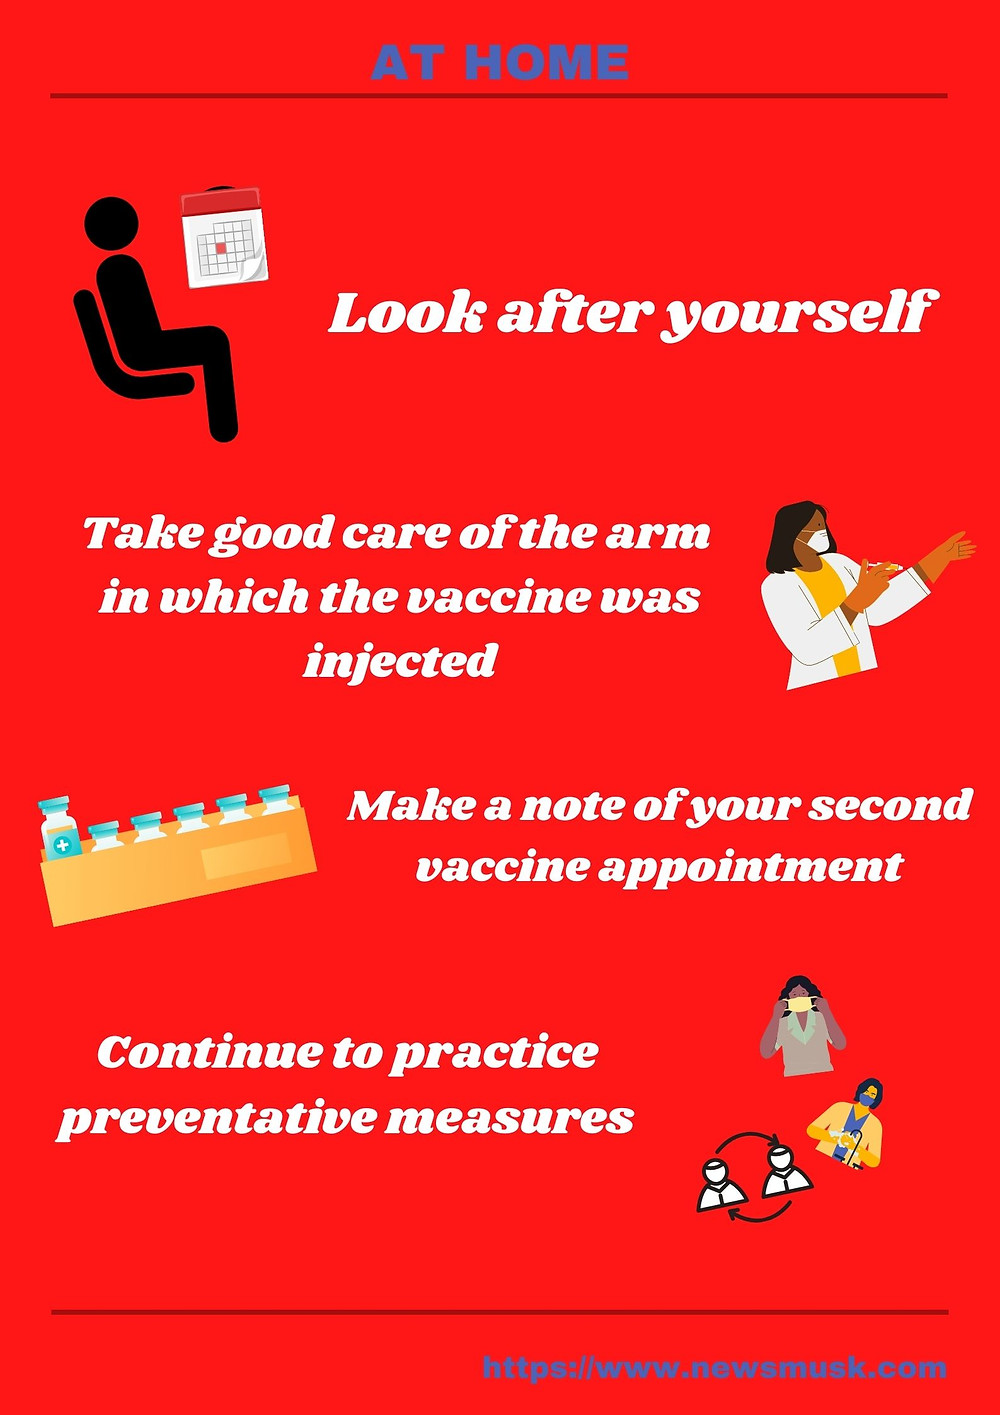 guidelines to follow at home after Covid Vaccination @newsmusk